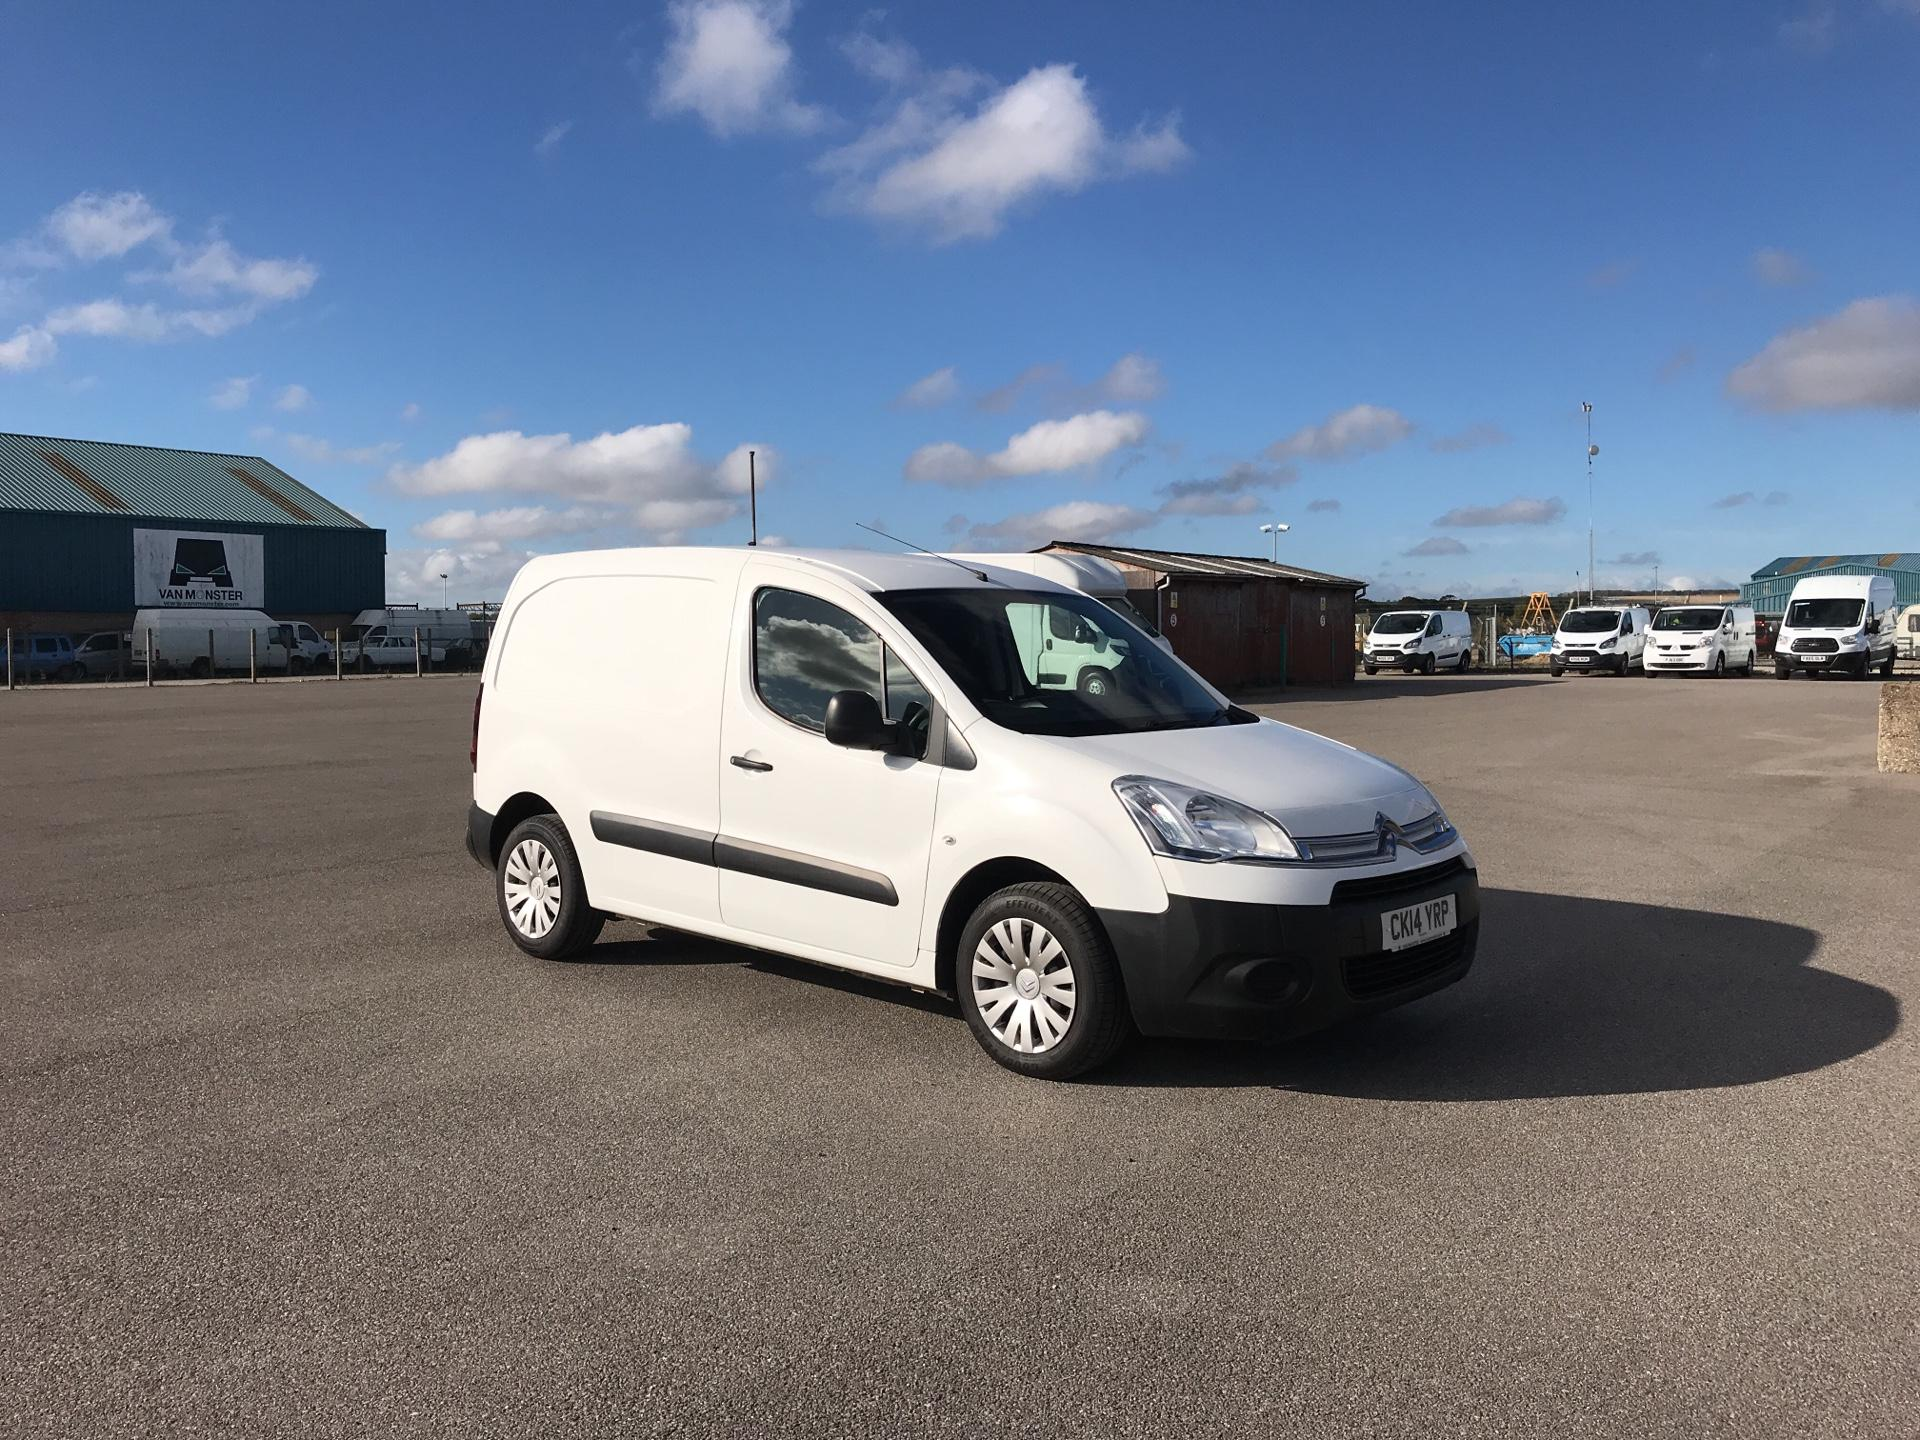 2014 Citroen Berlingo L1 DIESEL 1.6 HDI 625KG ENTERPRISE 75PS EURO 4/5. SAT NAV, AIR CON (CK14YRP)